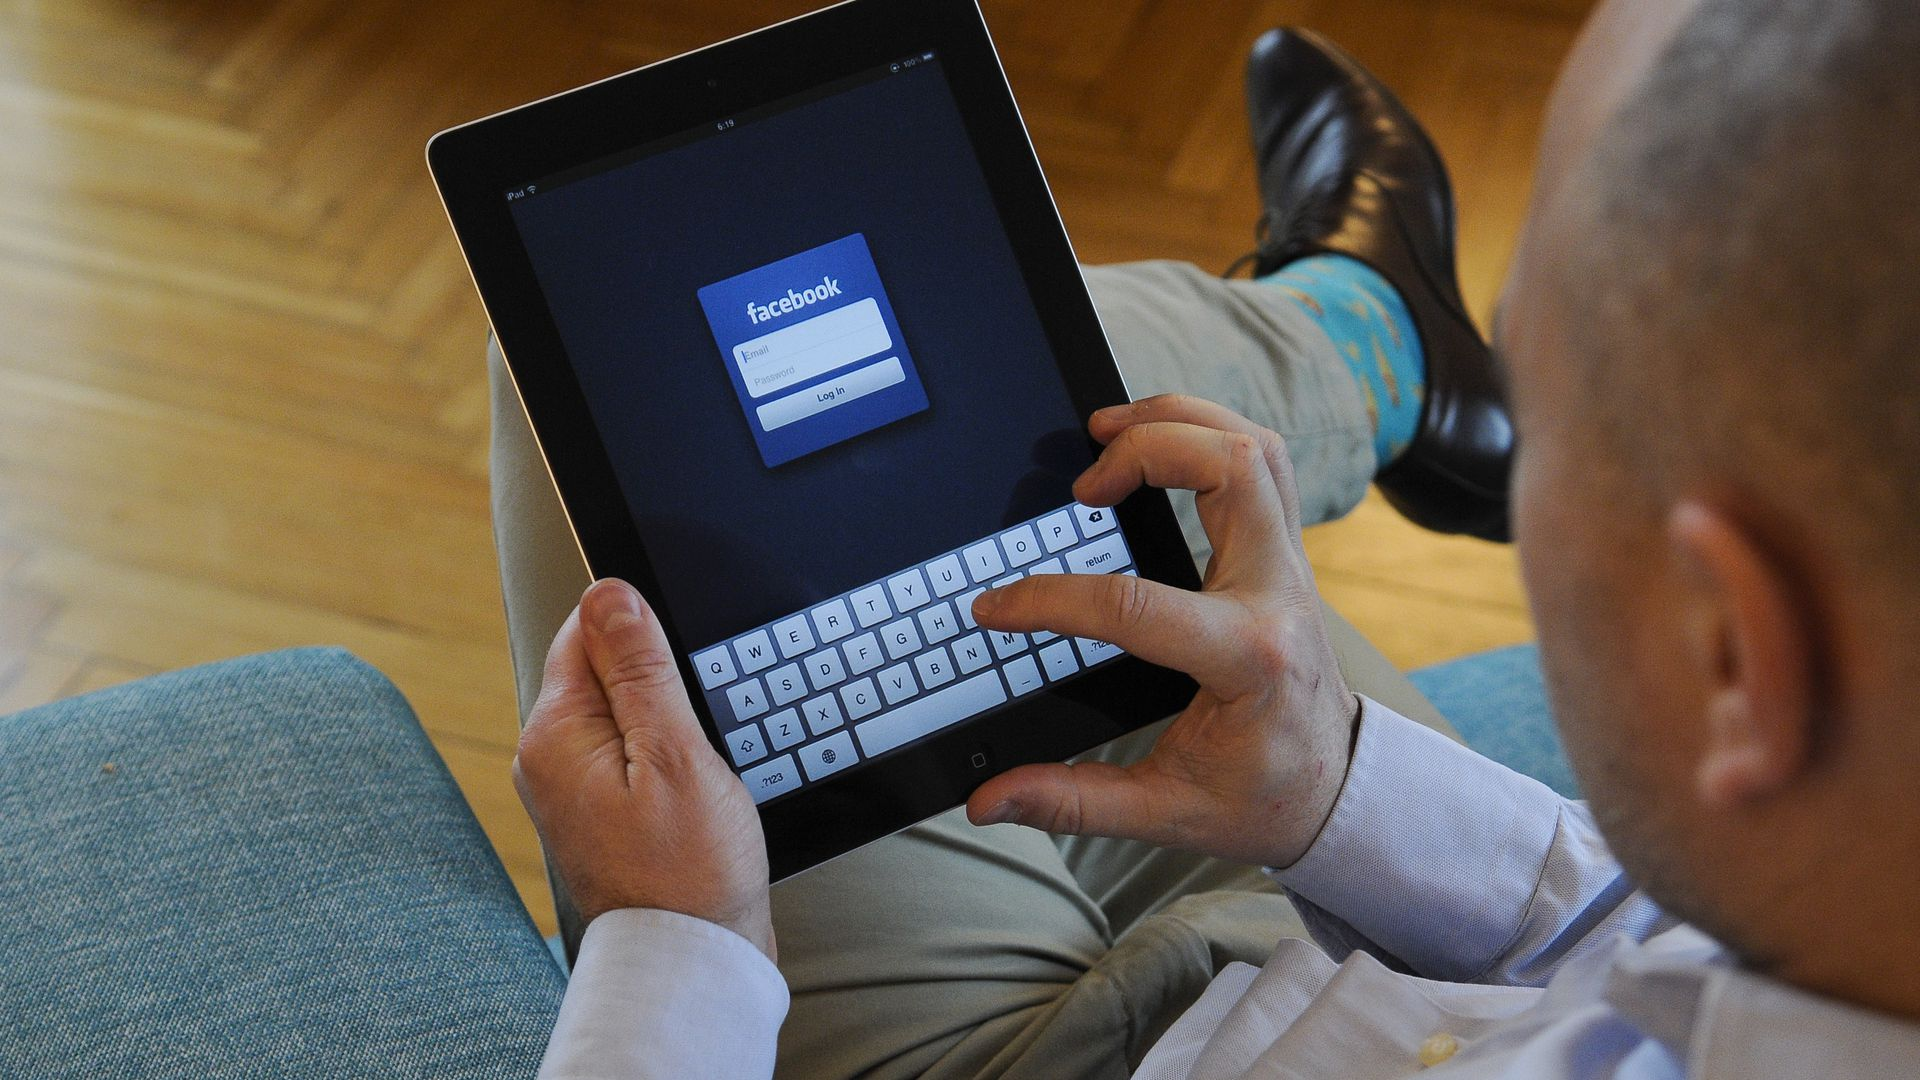 A man is seen holding an iPad with Facebook login screen.